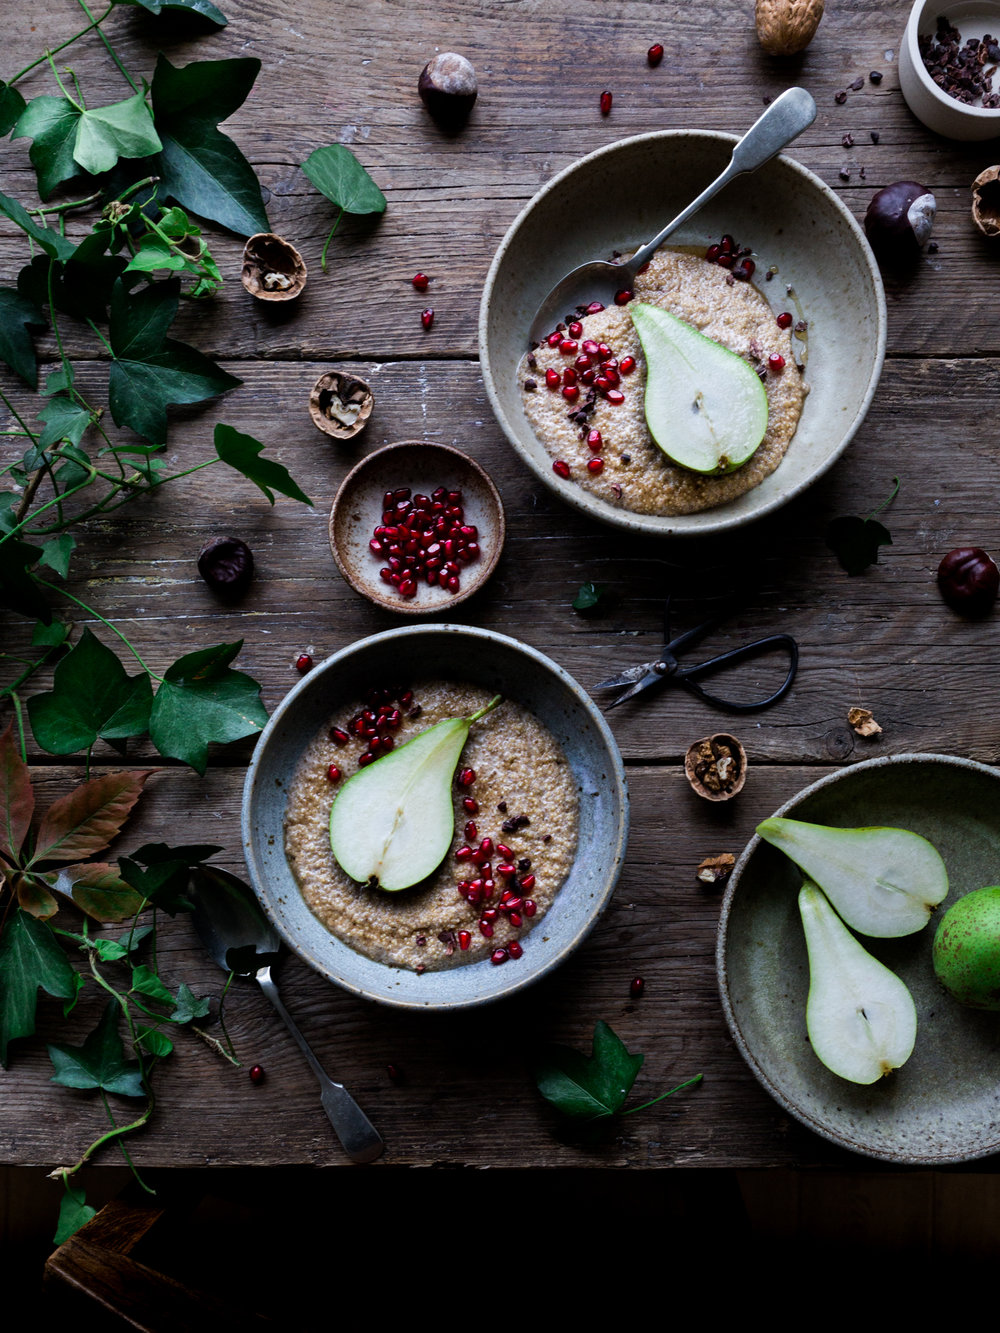 Online food styling and food photography classes - The Little Plantation